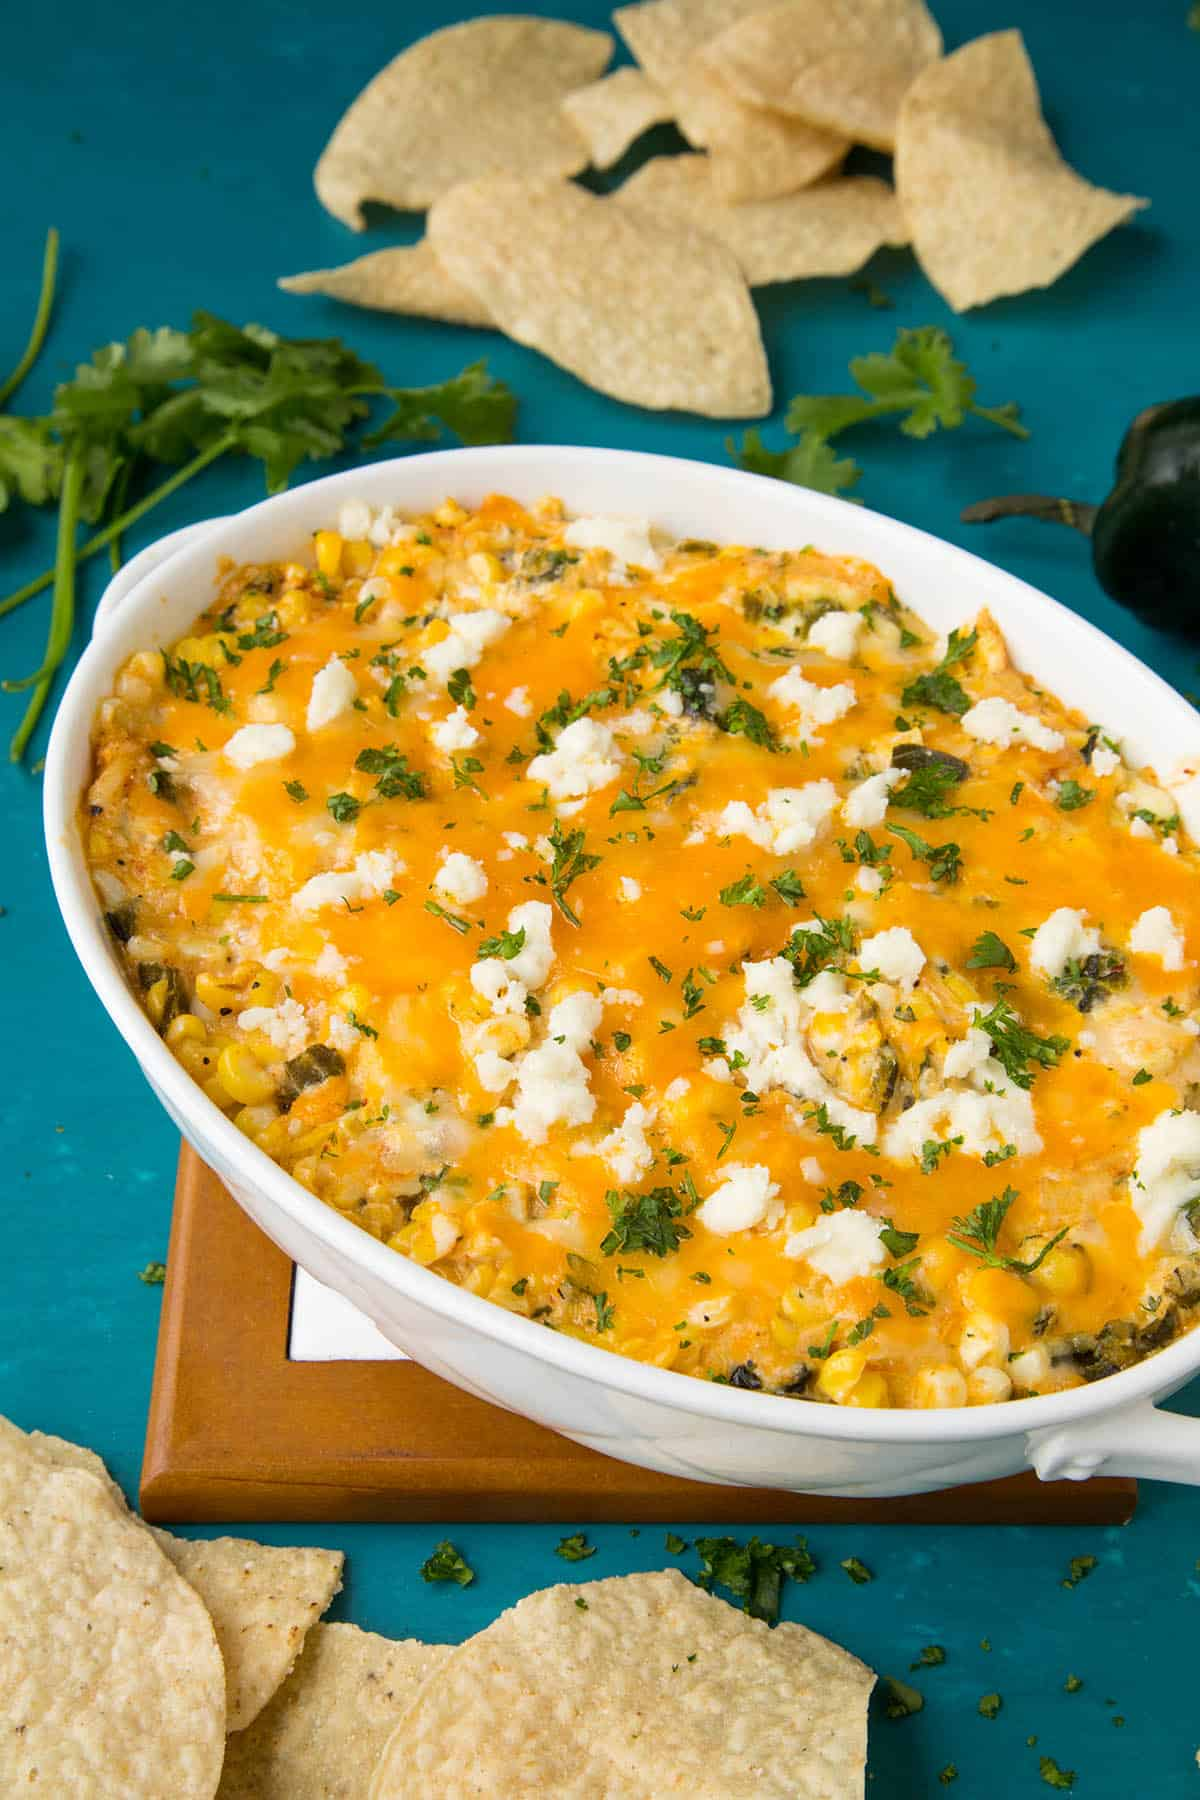 This cheese dip is extra cheesy, with roasted poblano peppers and corn.